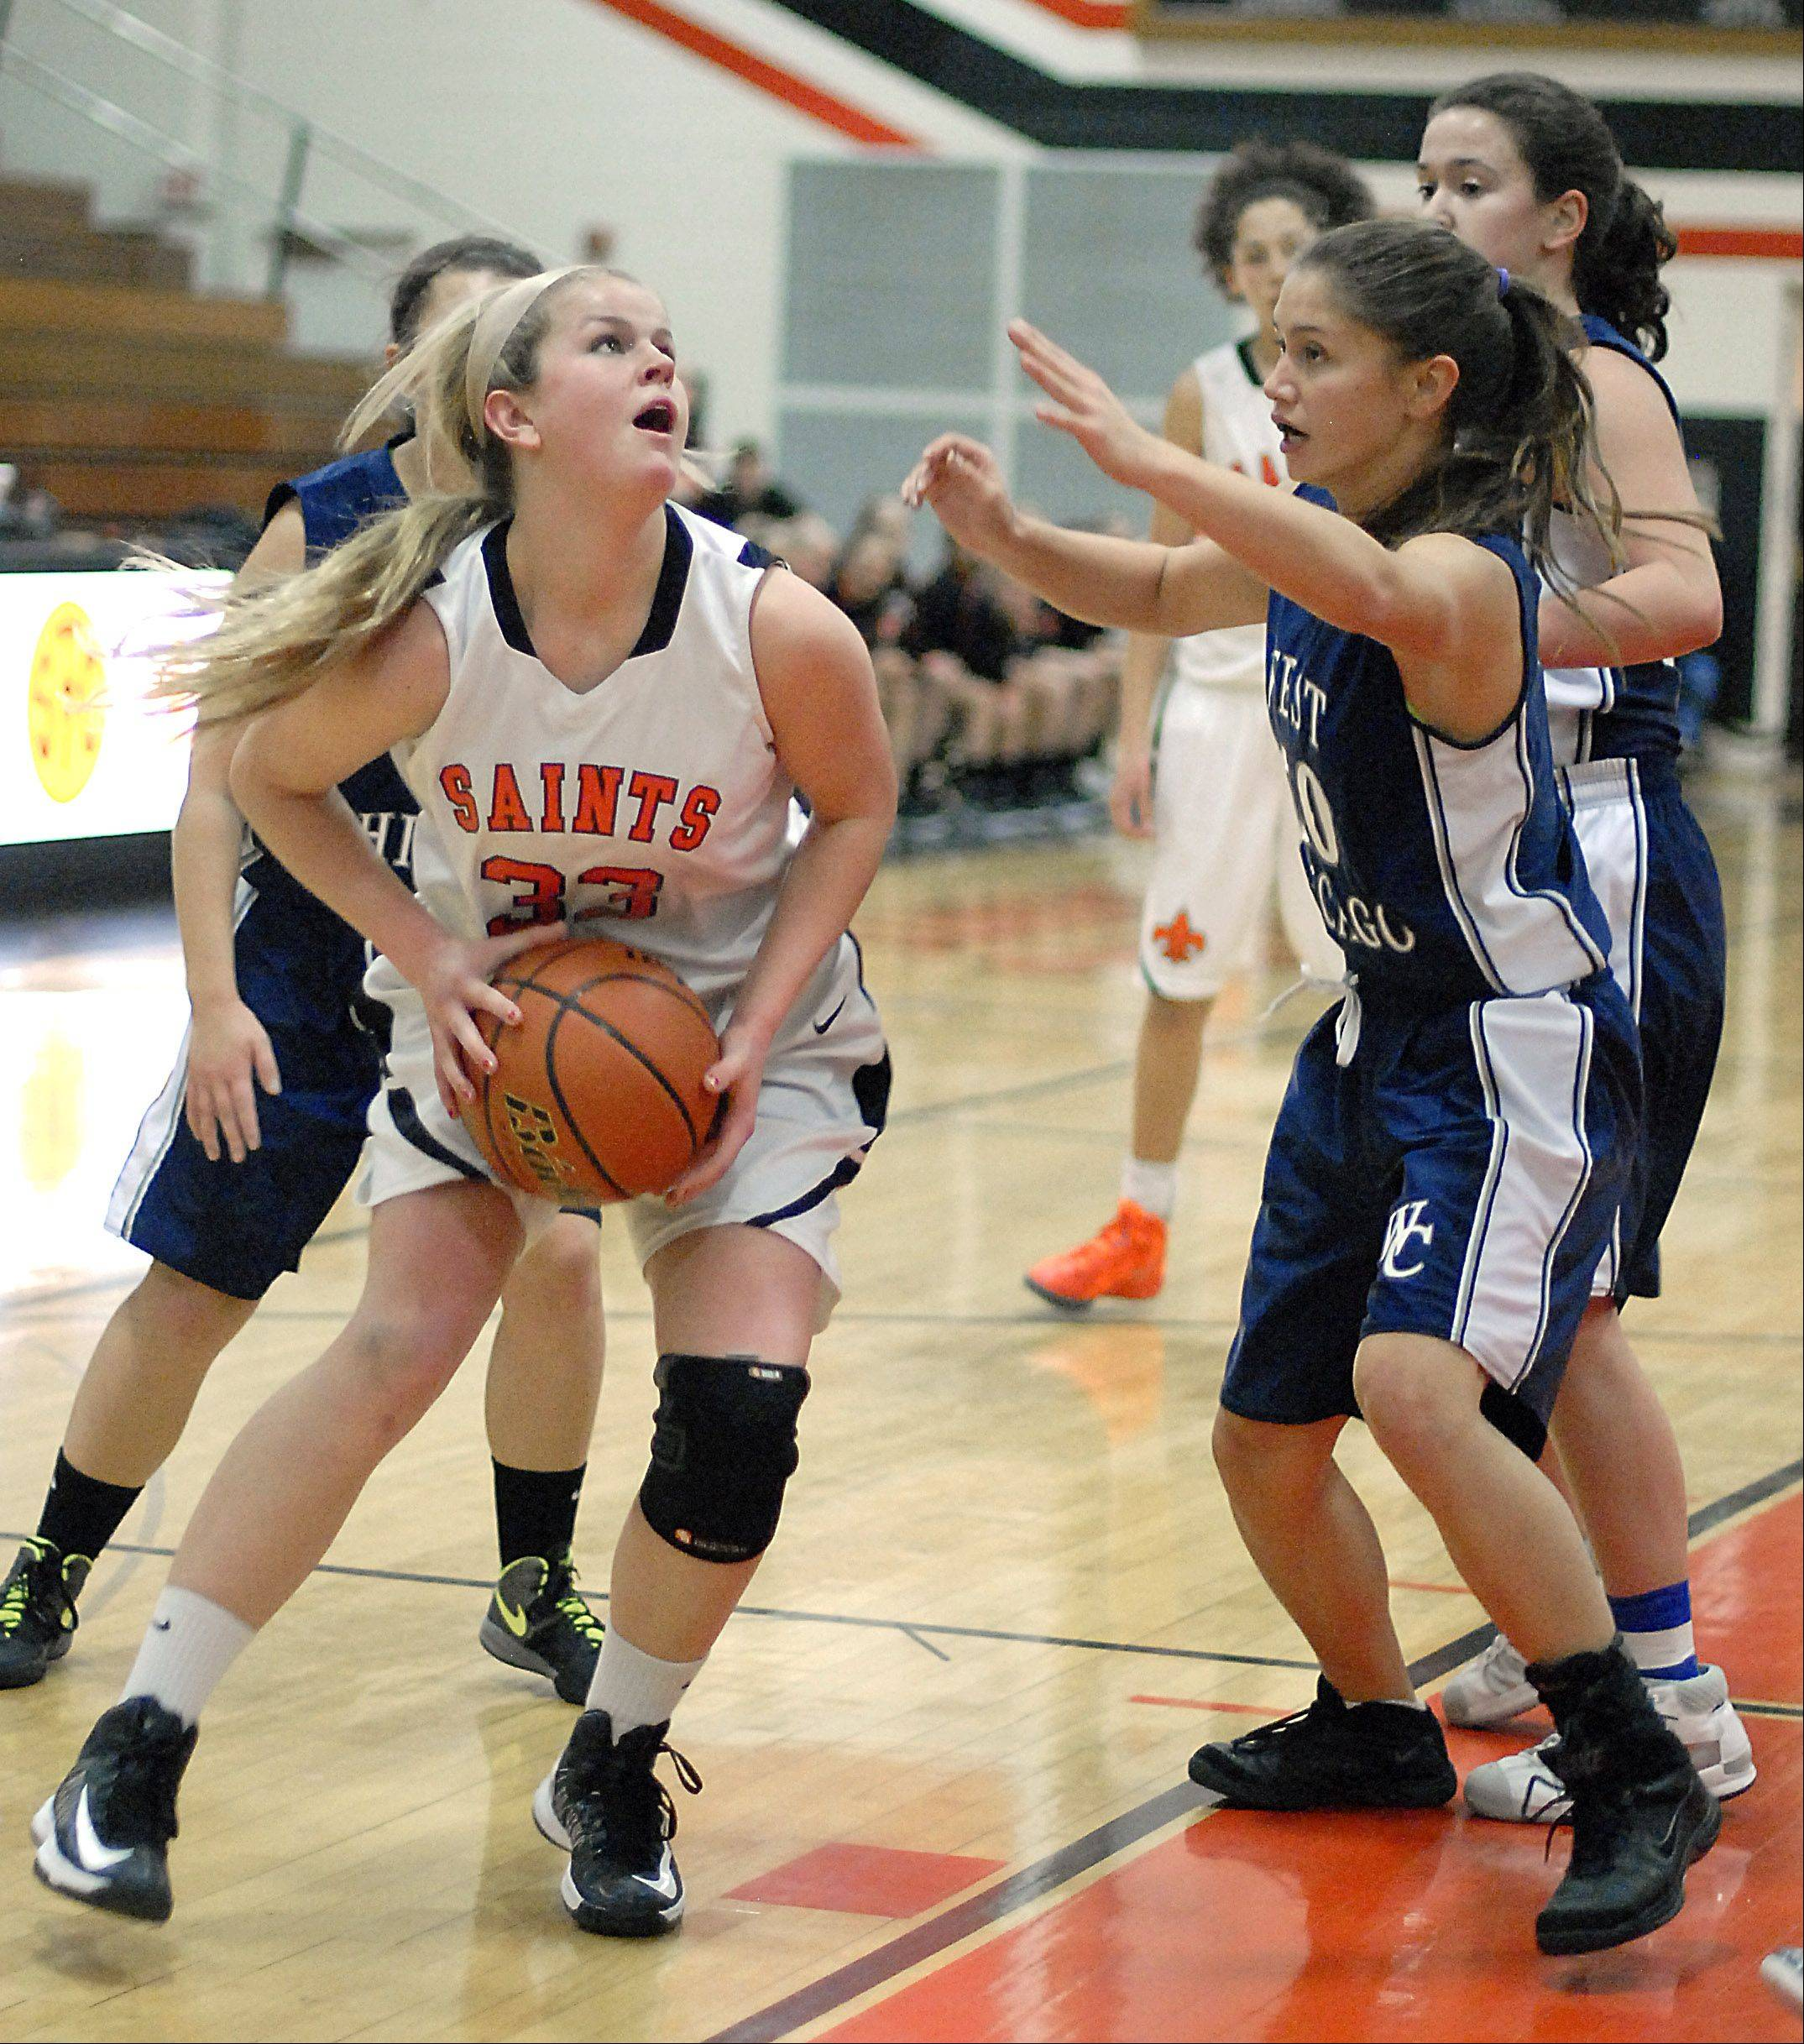 St. Charles East�s Hannah Nowling looks to shoot over a block by West Chicago�s Amanda Gosbeth in the second quarter on Tuesday, December 4.